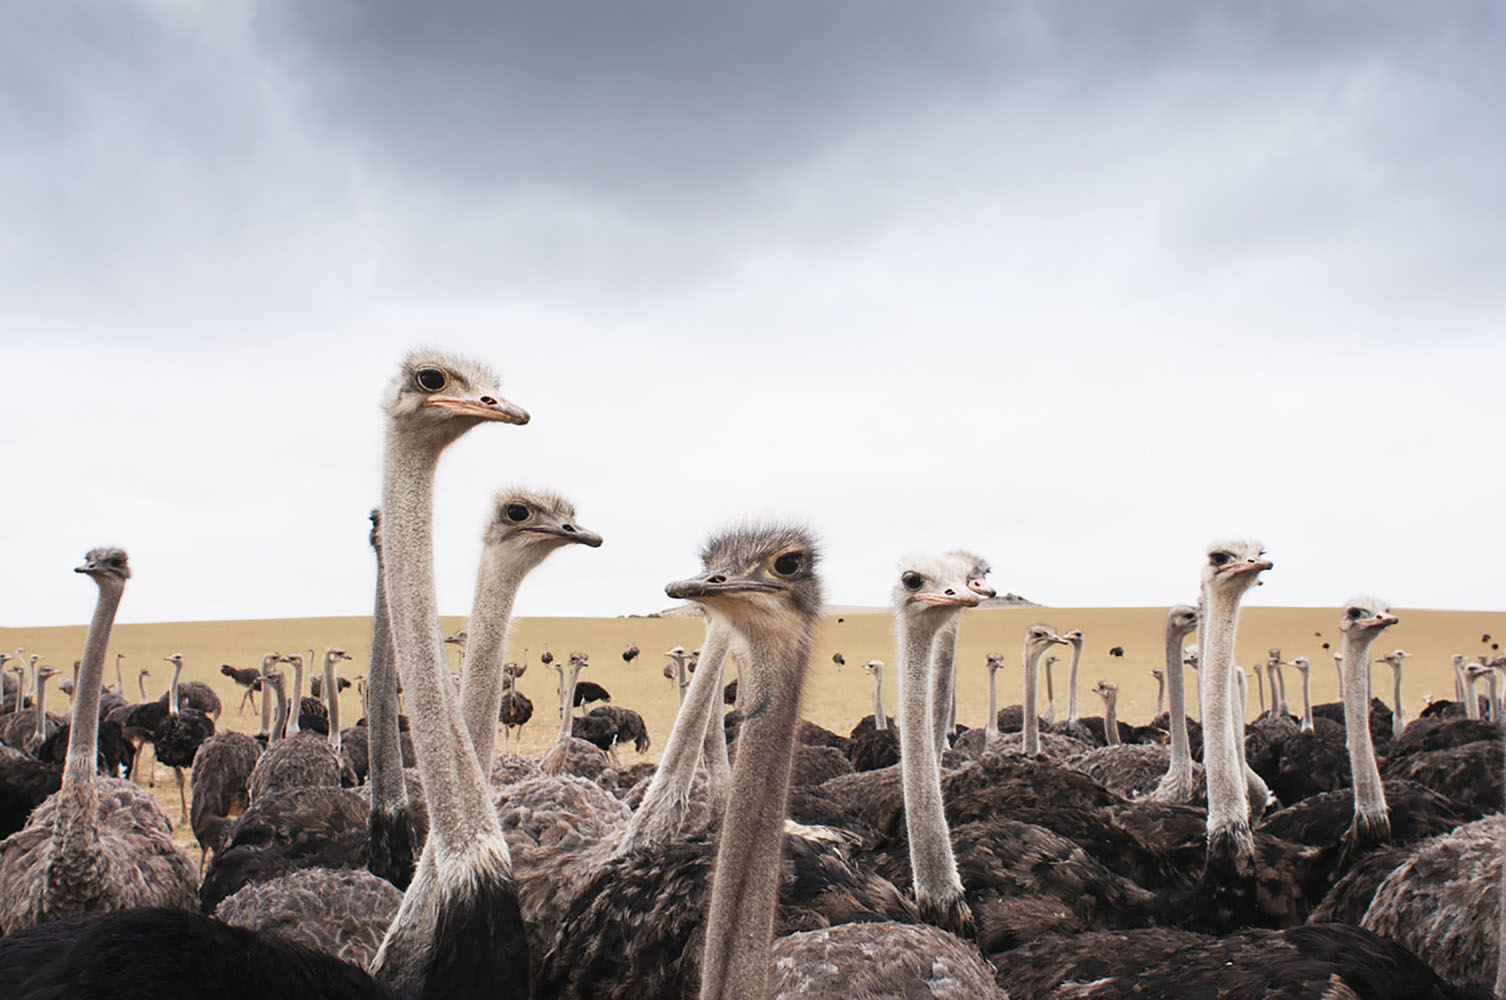 A group of ostriches in South Africa.